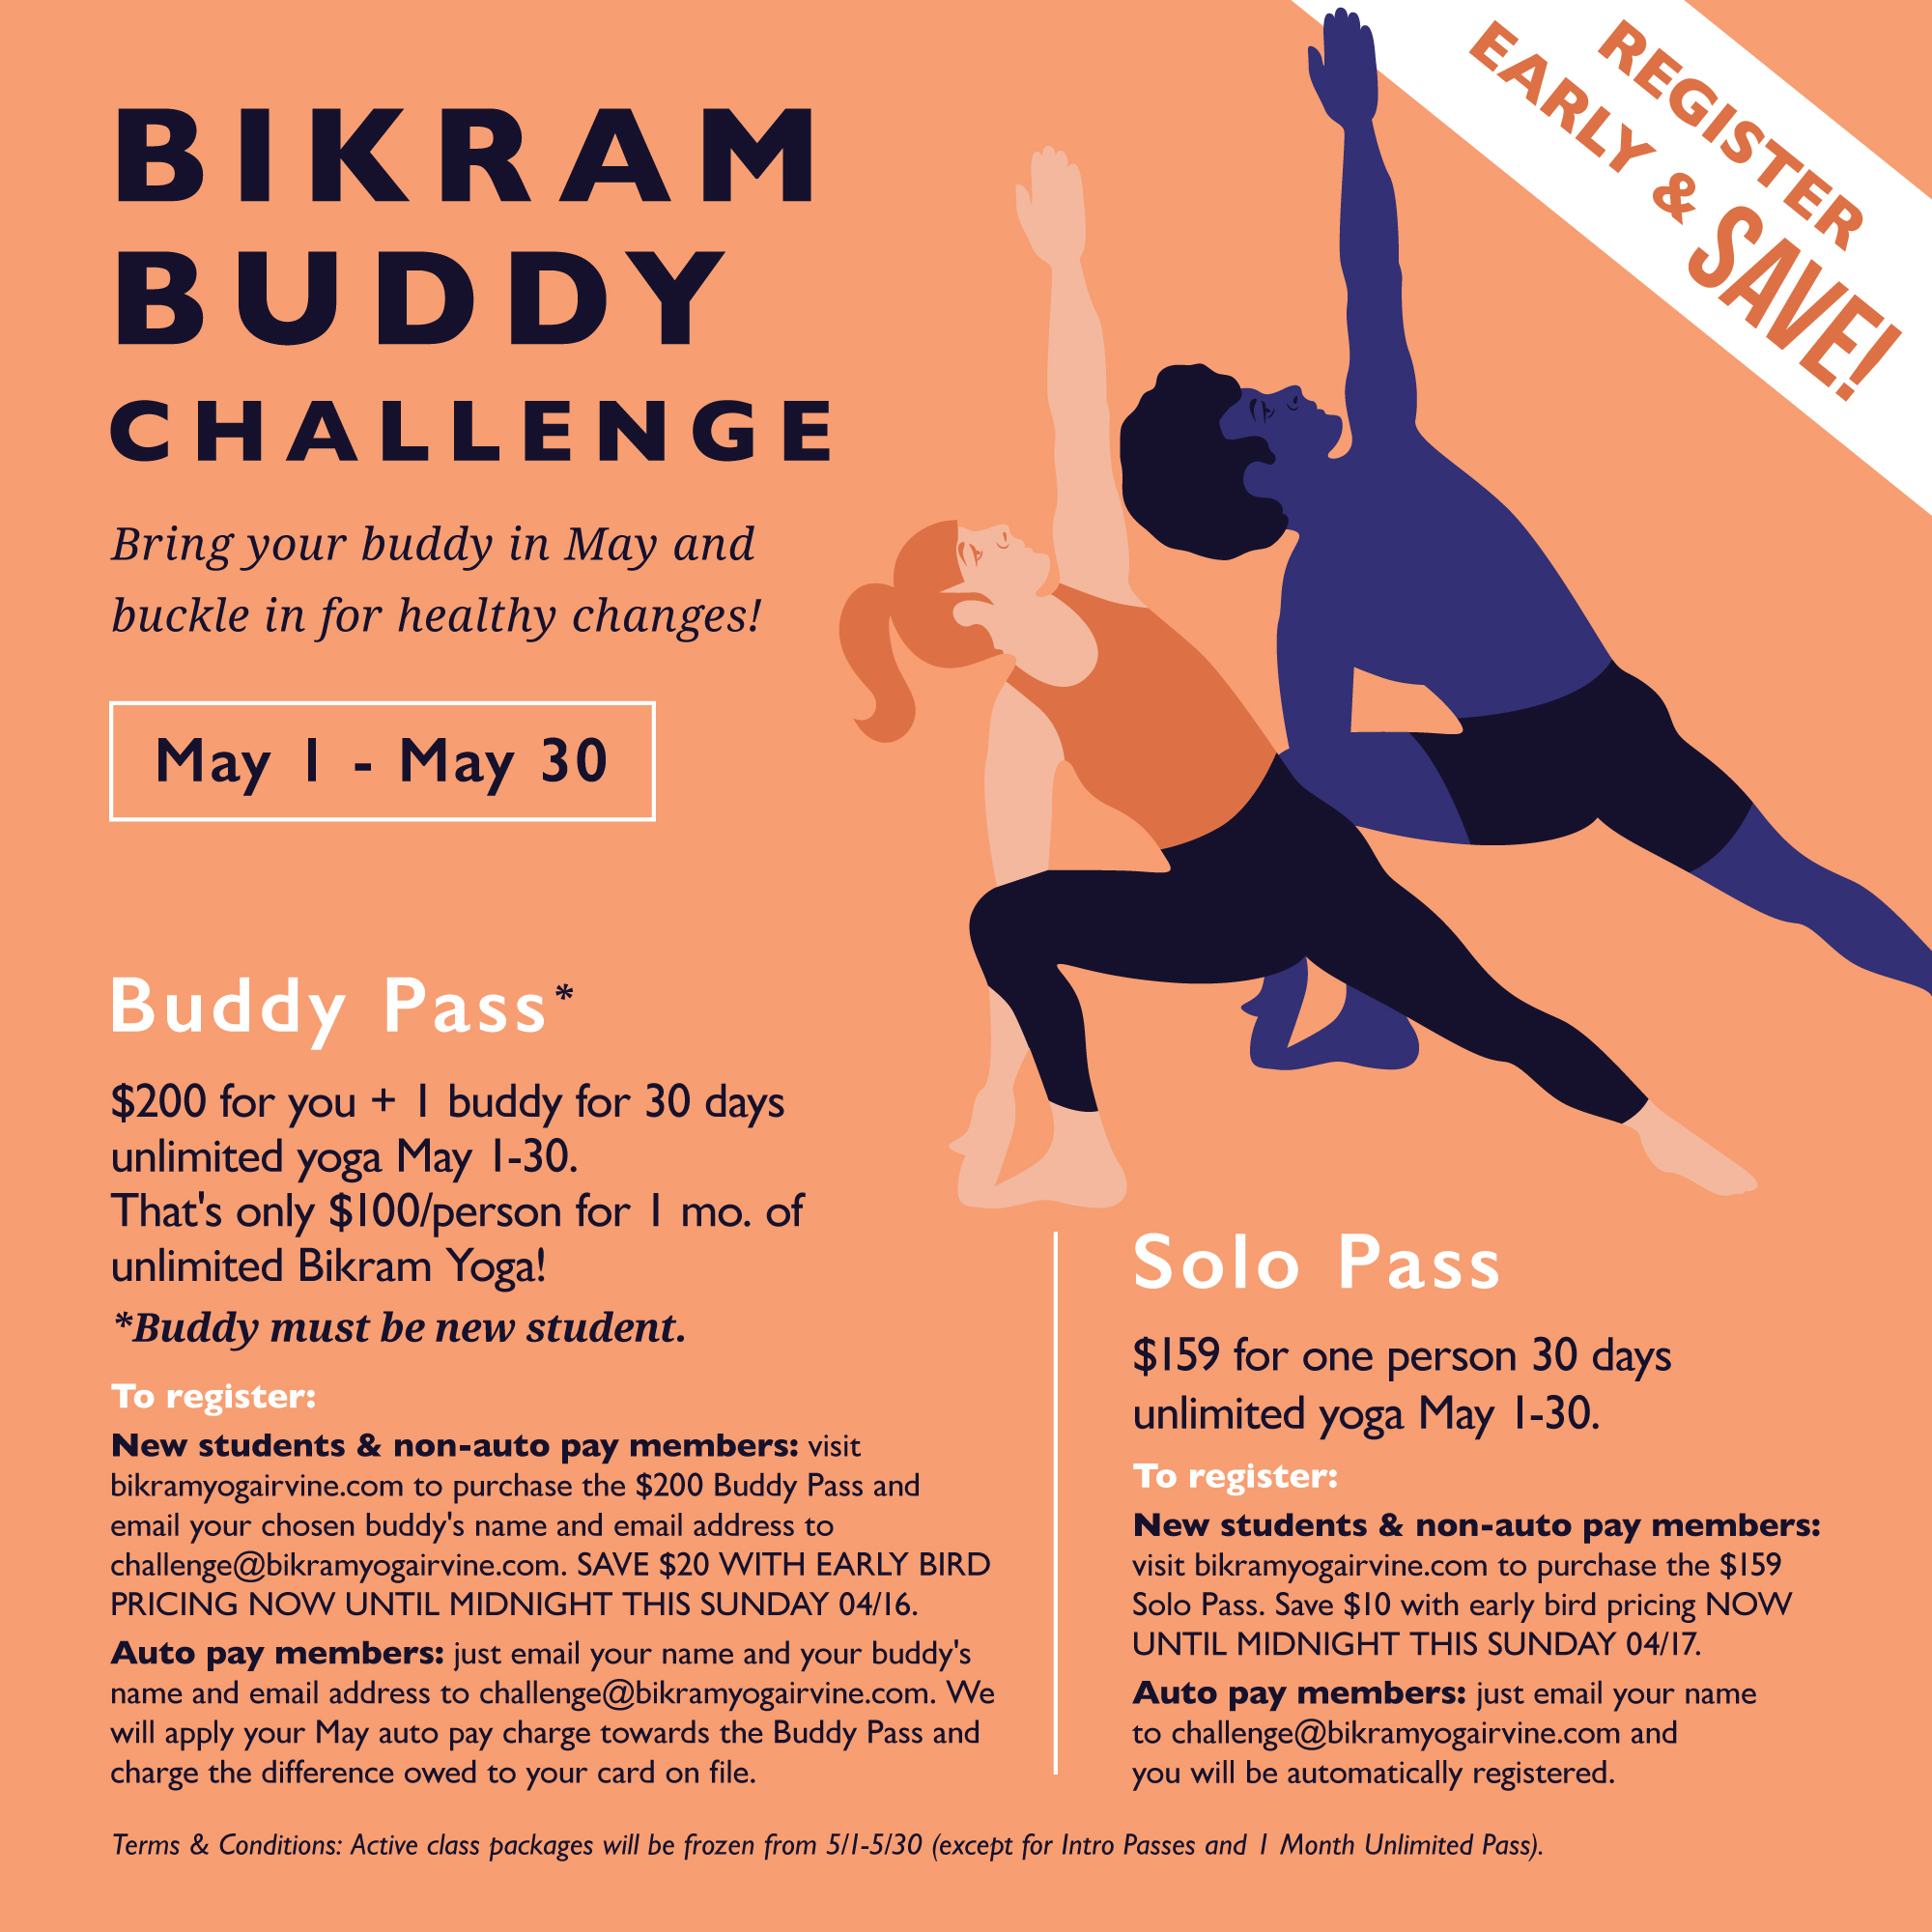 Bikram Buddy Challenge going on May 1- May 30